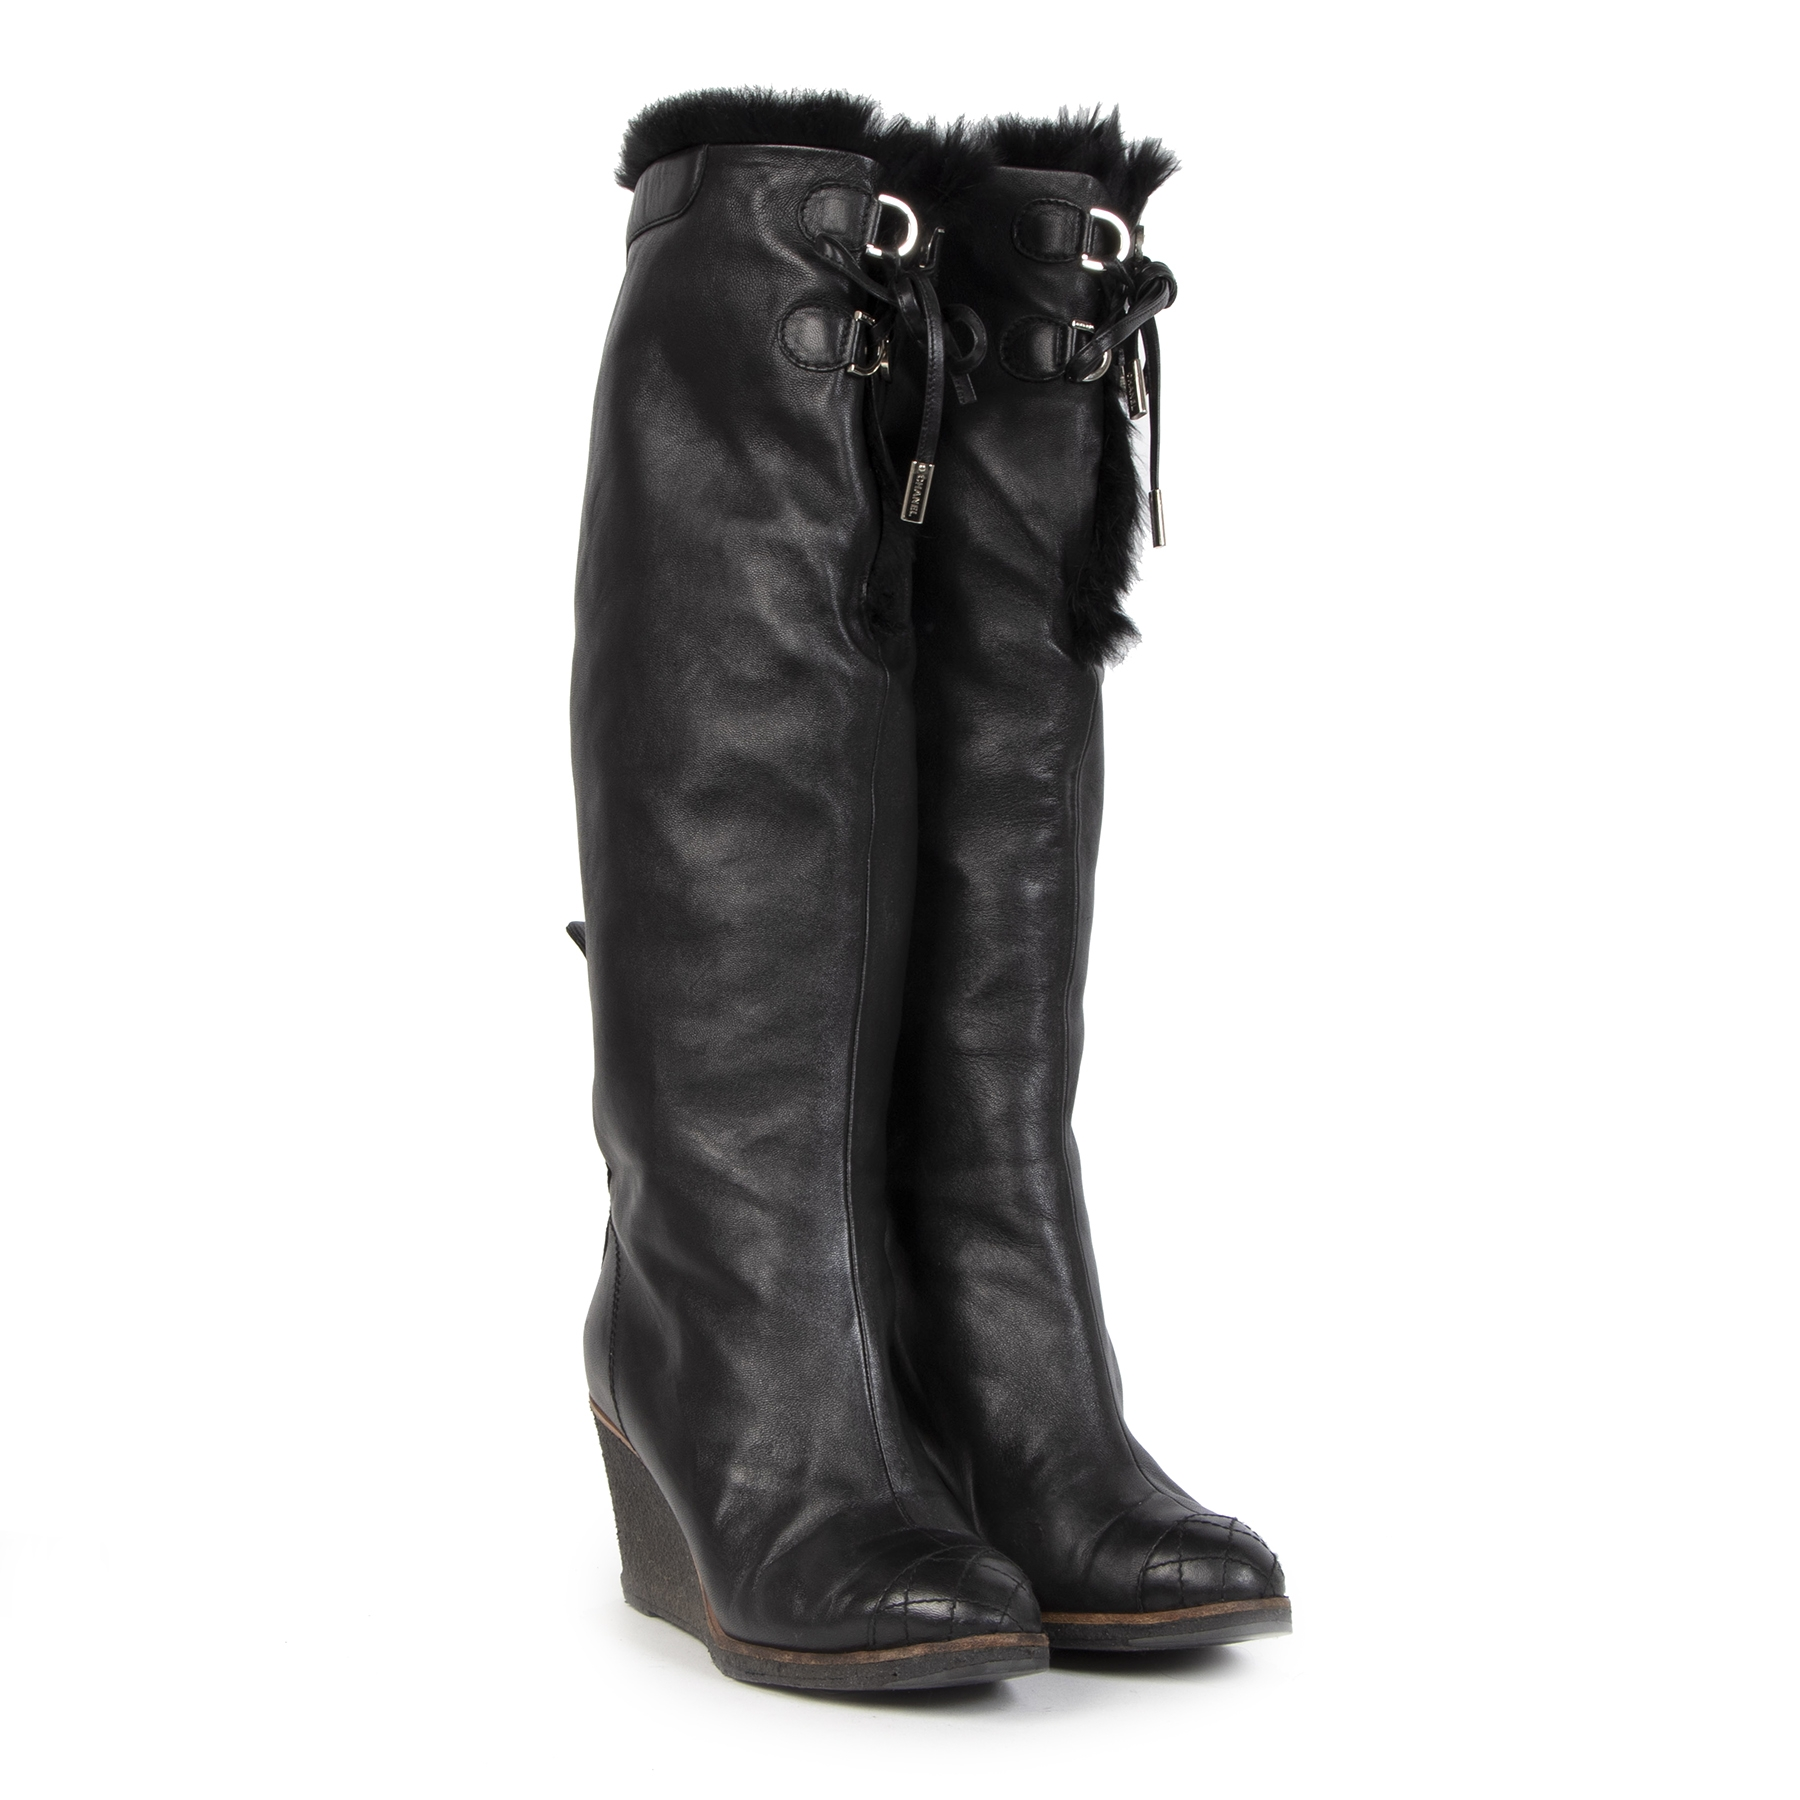 Chanel Black Leather Fur-Lined Wedge Boots - 37,5